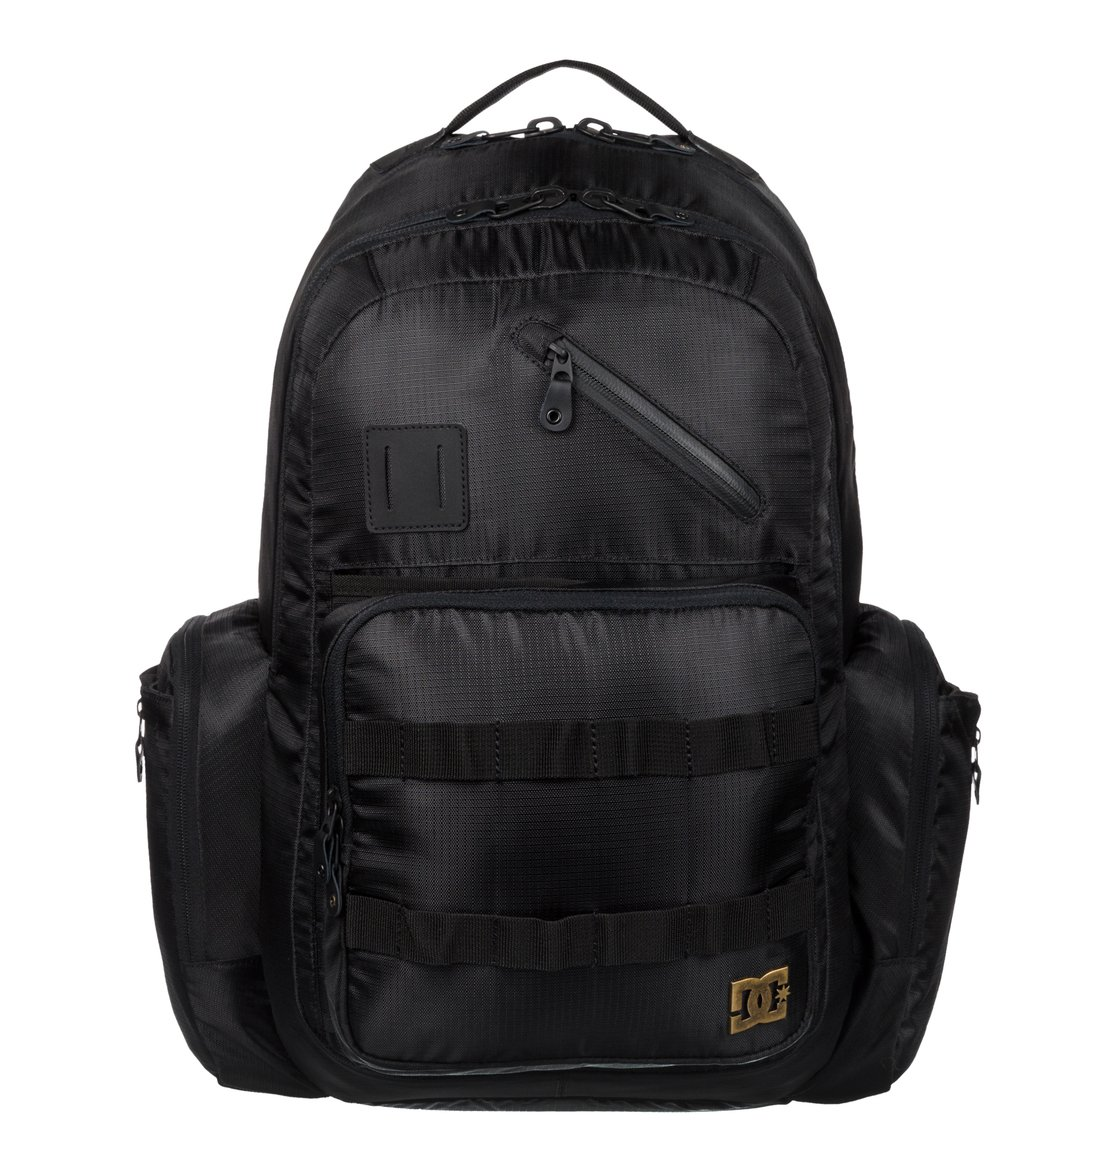 0 Pyramid S Backpack Adybp00038 Dc Shoes